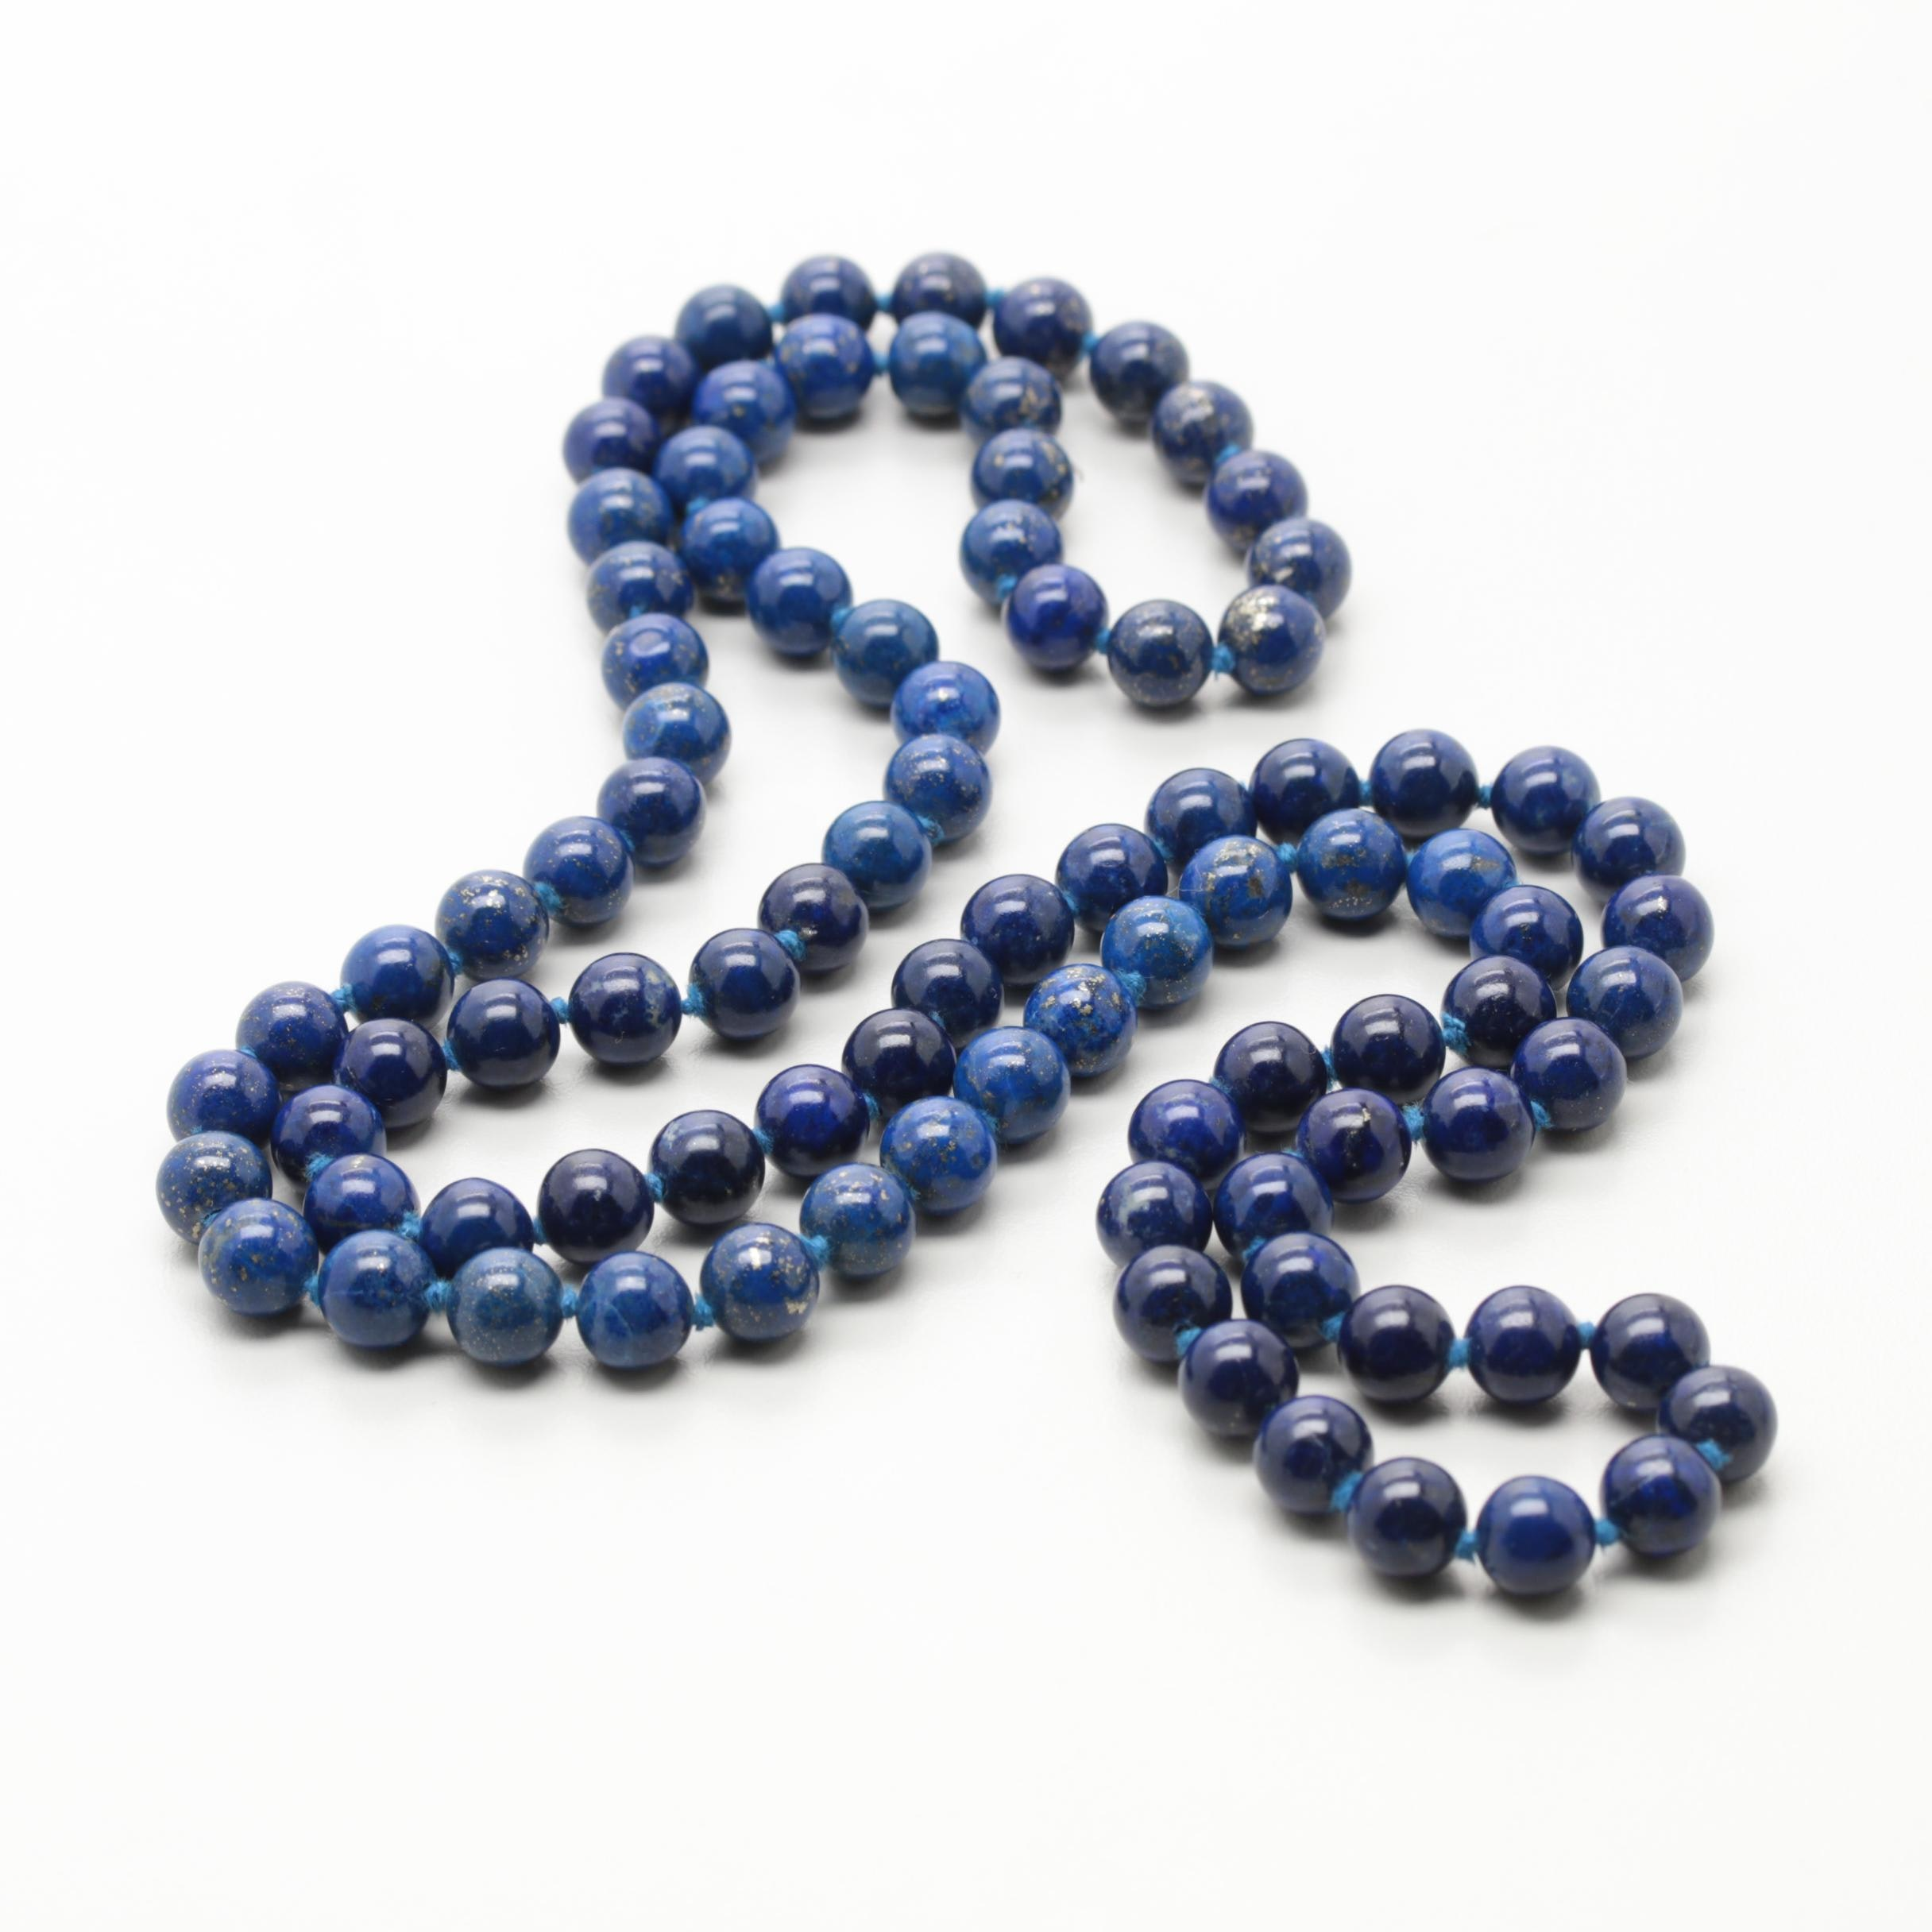 Hand Knotted Endless Beaded Lapis Lazuli Necklace